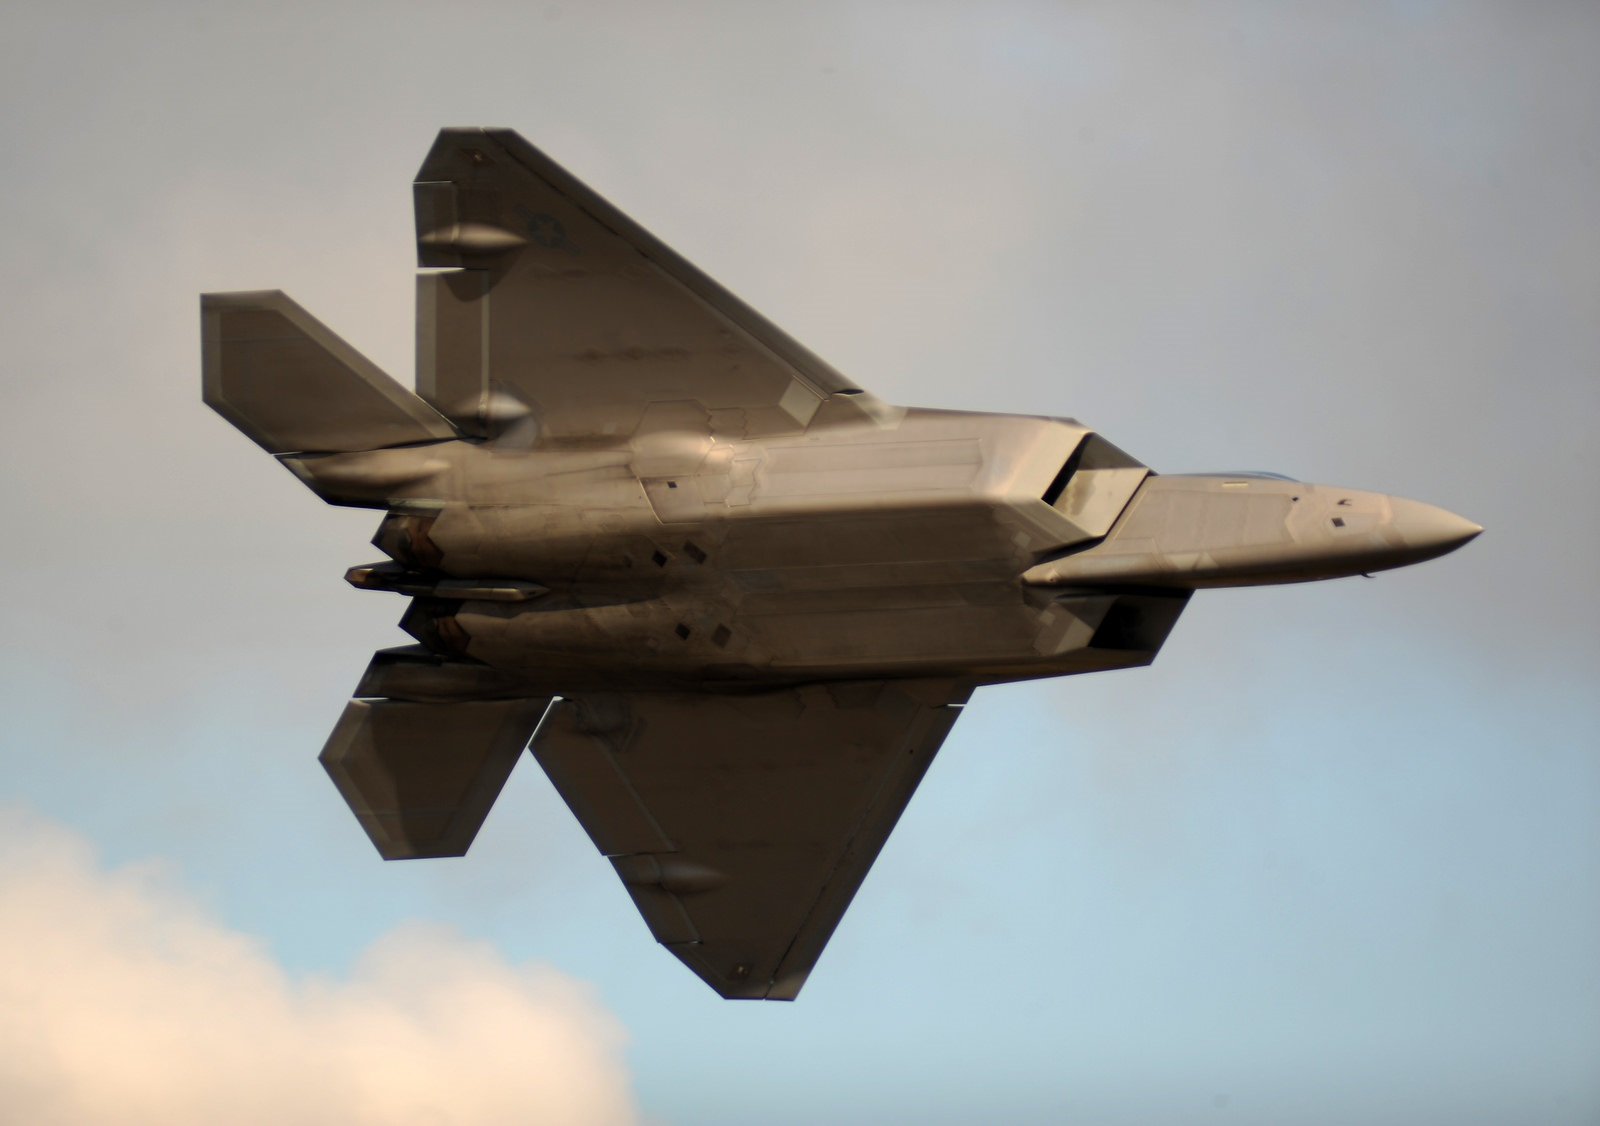 Raptor Killer: Could Russia's S-500 Shootdown an F-22 Stealth Fighter?